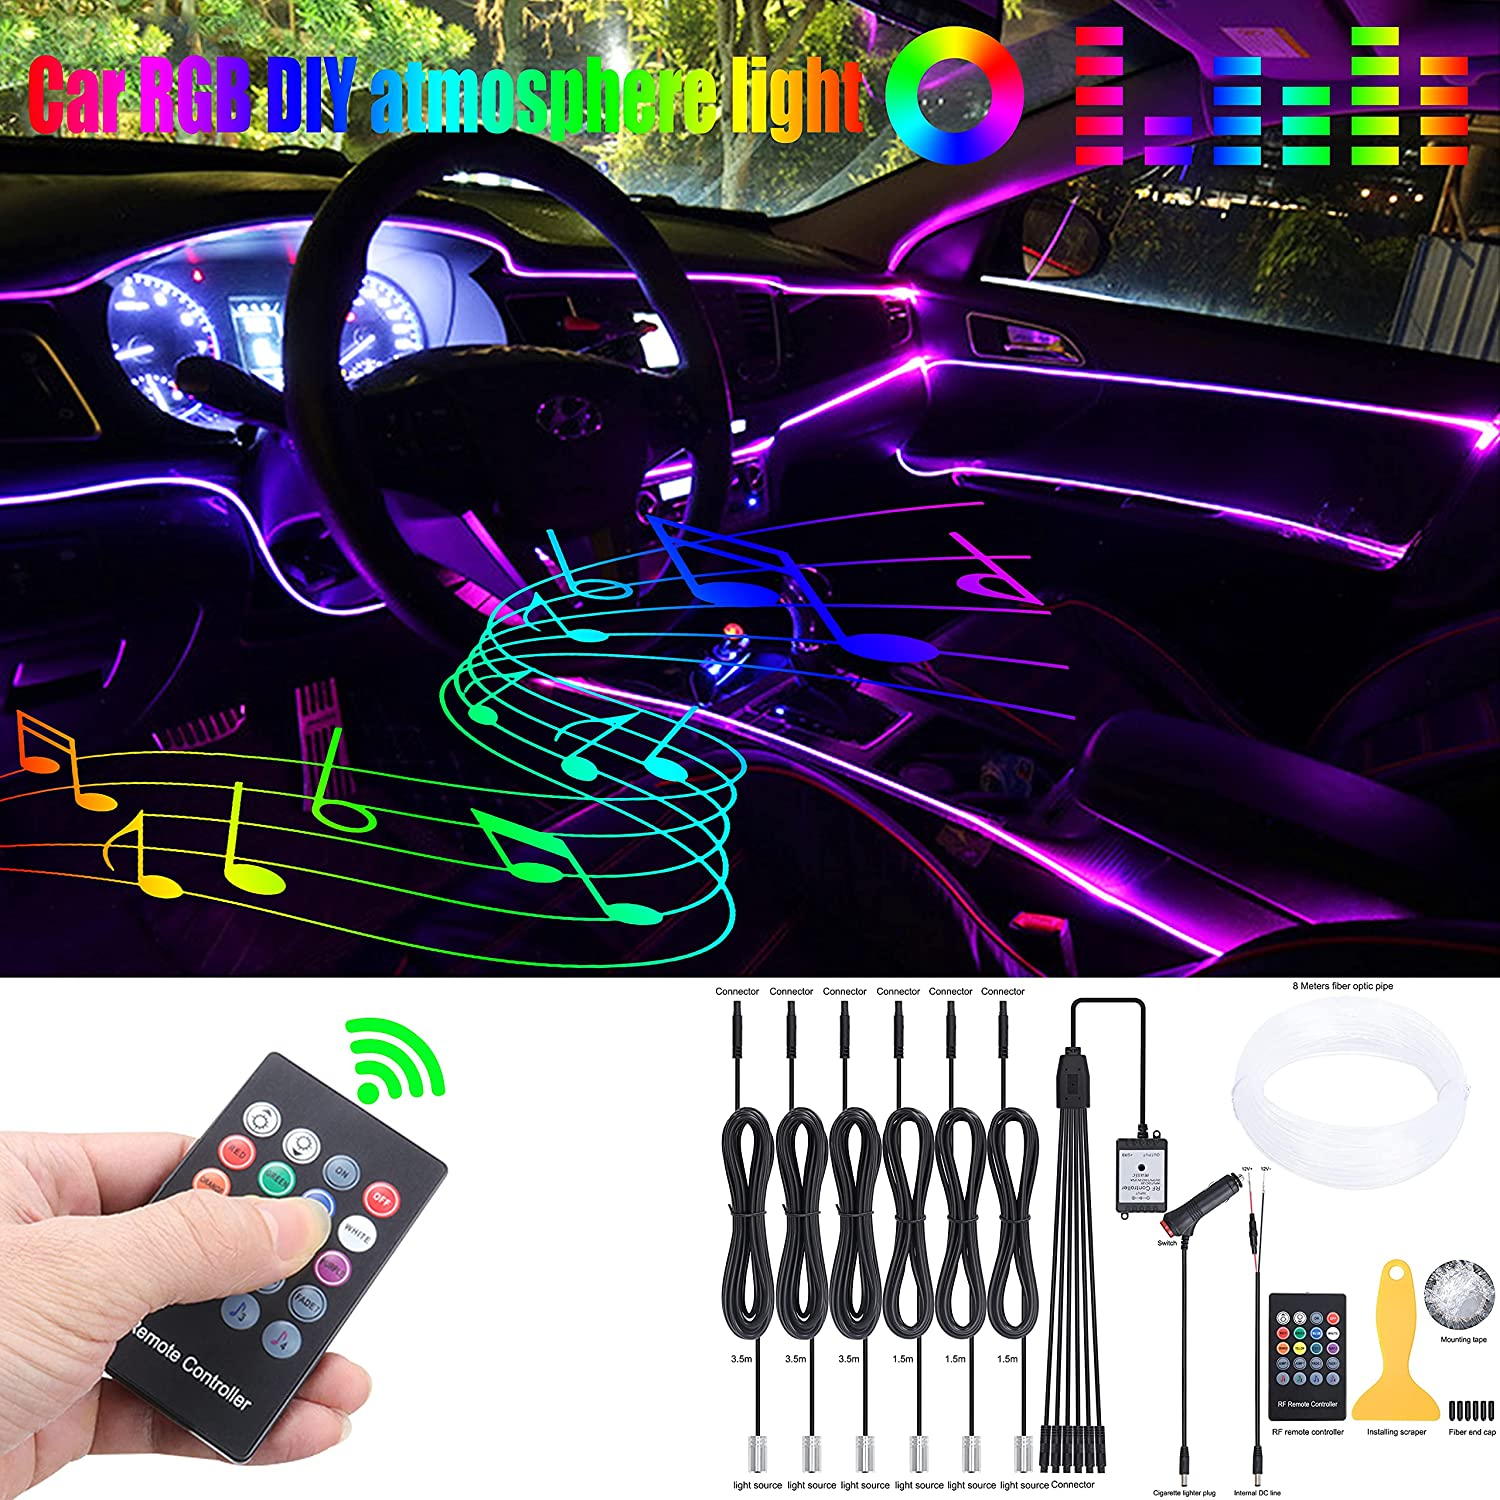 QAUBEN 8 Meters Optic Fiber Cable with R New color Car Lighting Ambient Attention brand RF